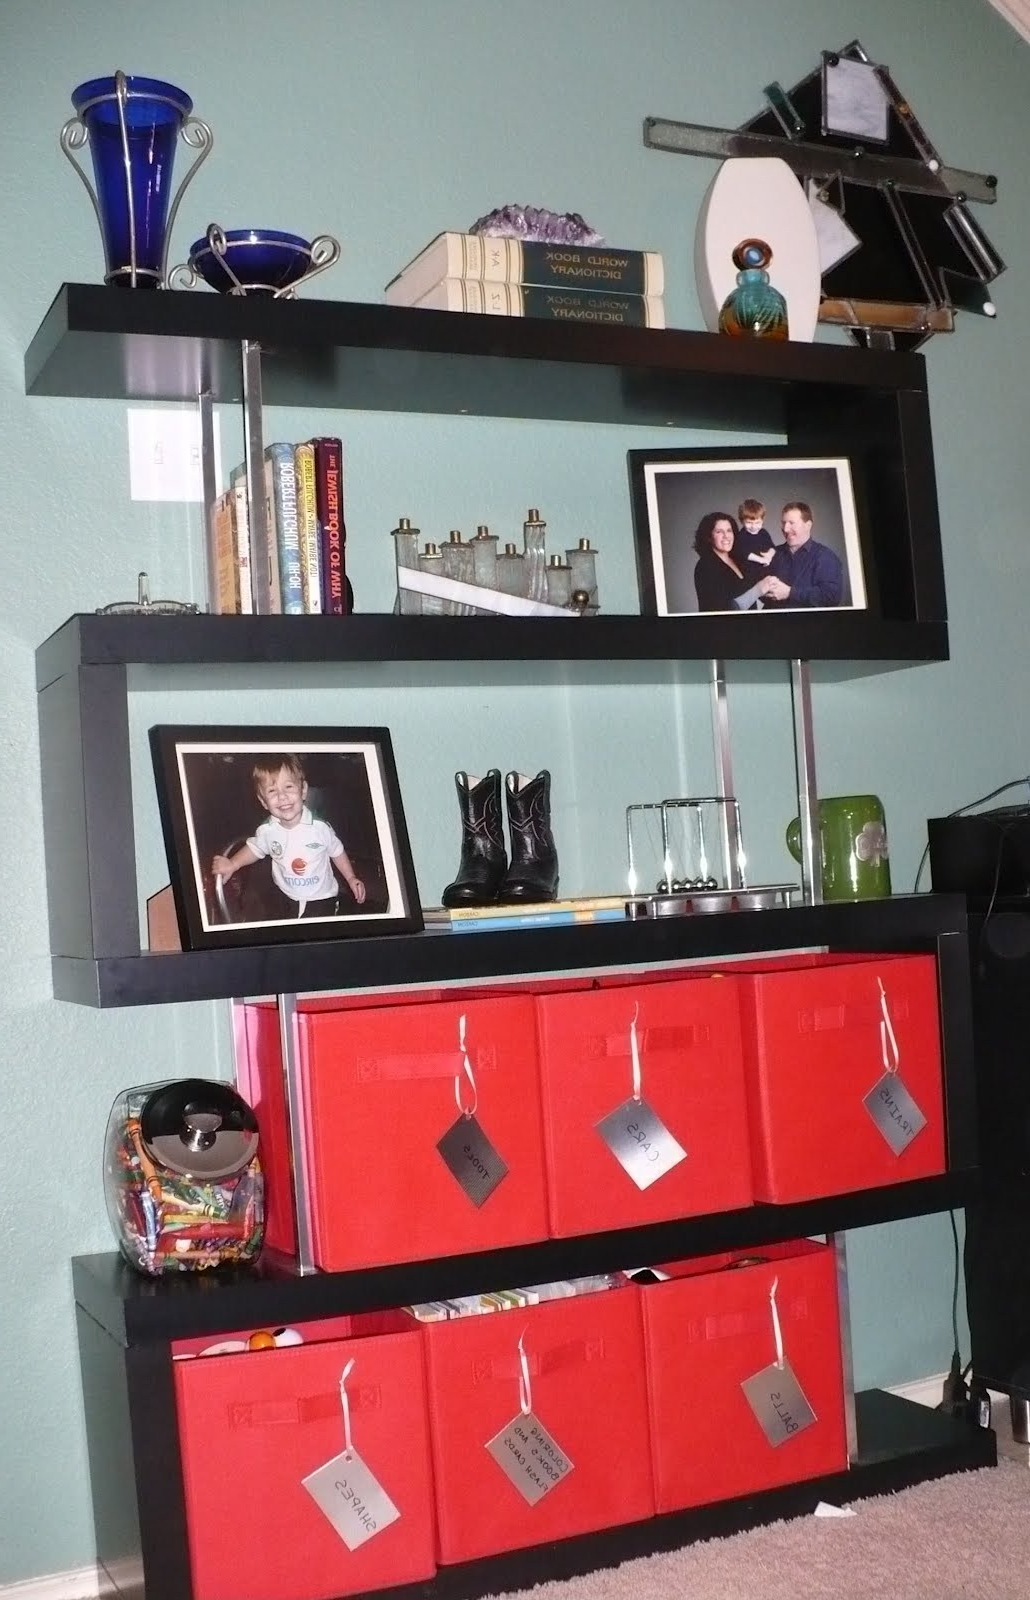 Current Zig Zag Bookcases Throughout Zig Zag Lack Shelf Bookcase – Ikea Hackers (View 11 of 15)